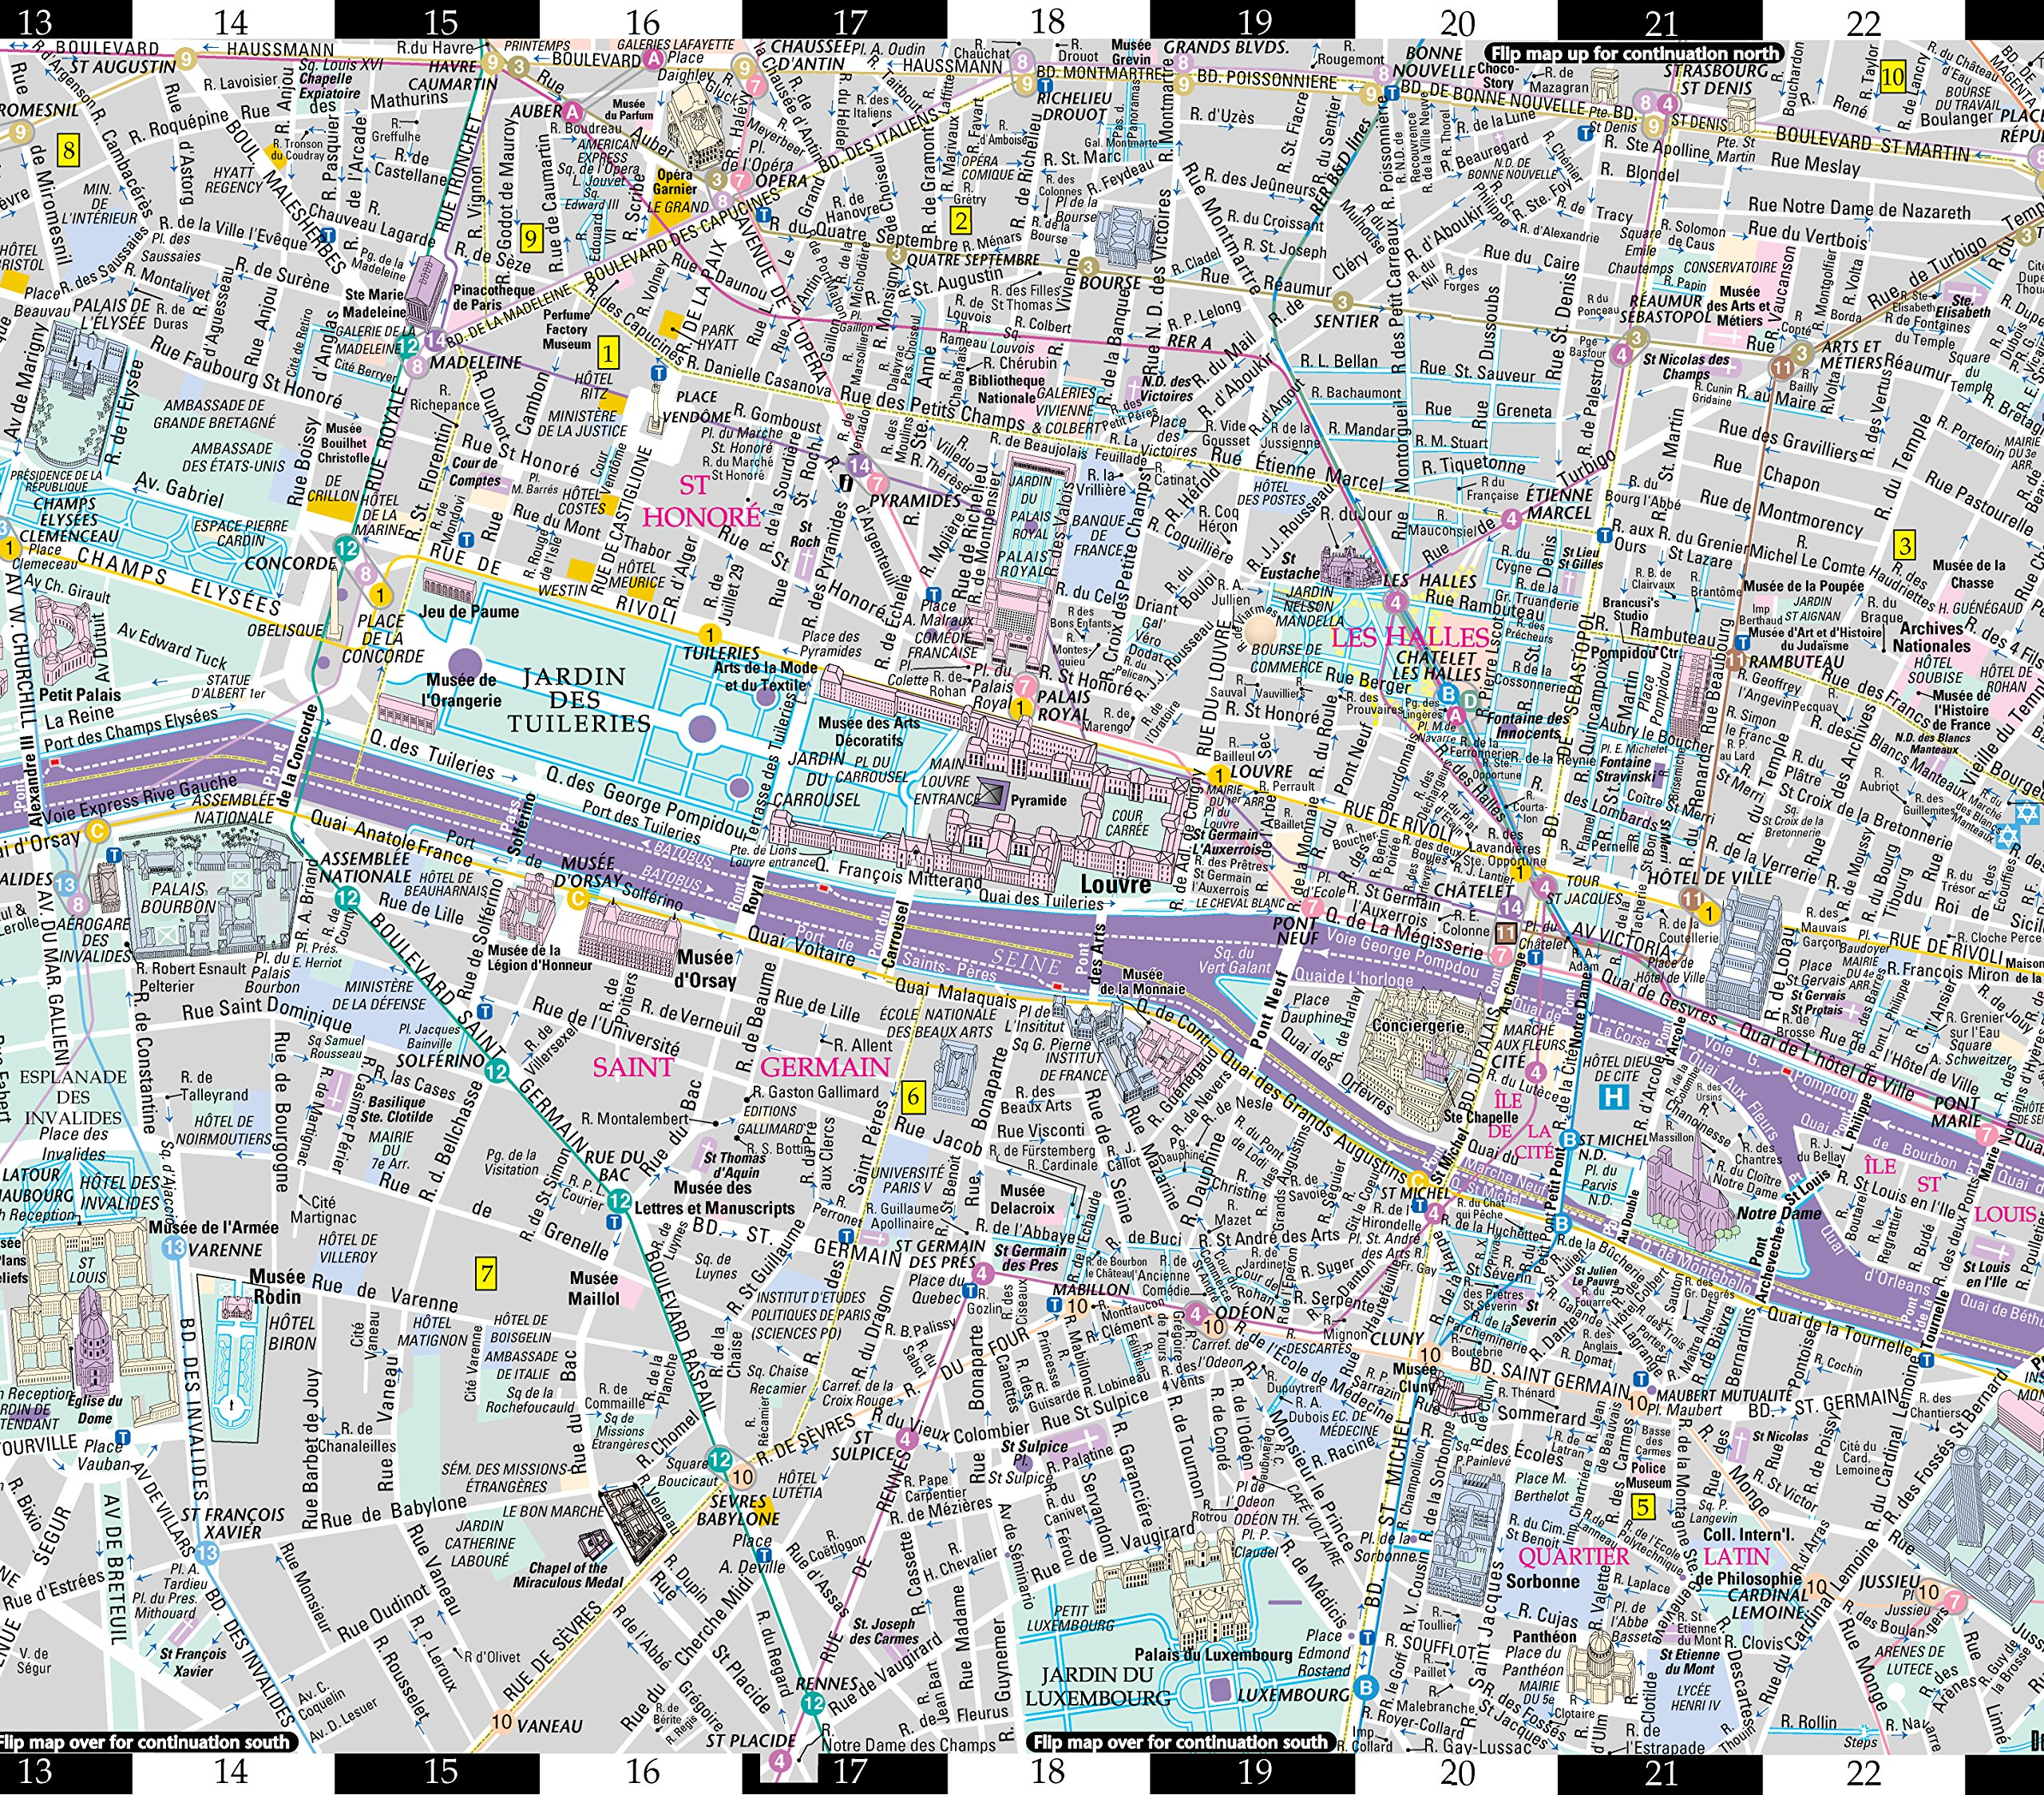 Streetwise Paris Map - Laminated City Center Street Map of Paris ...